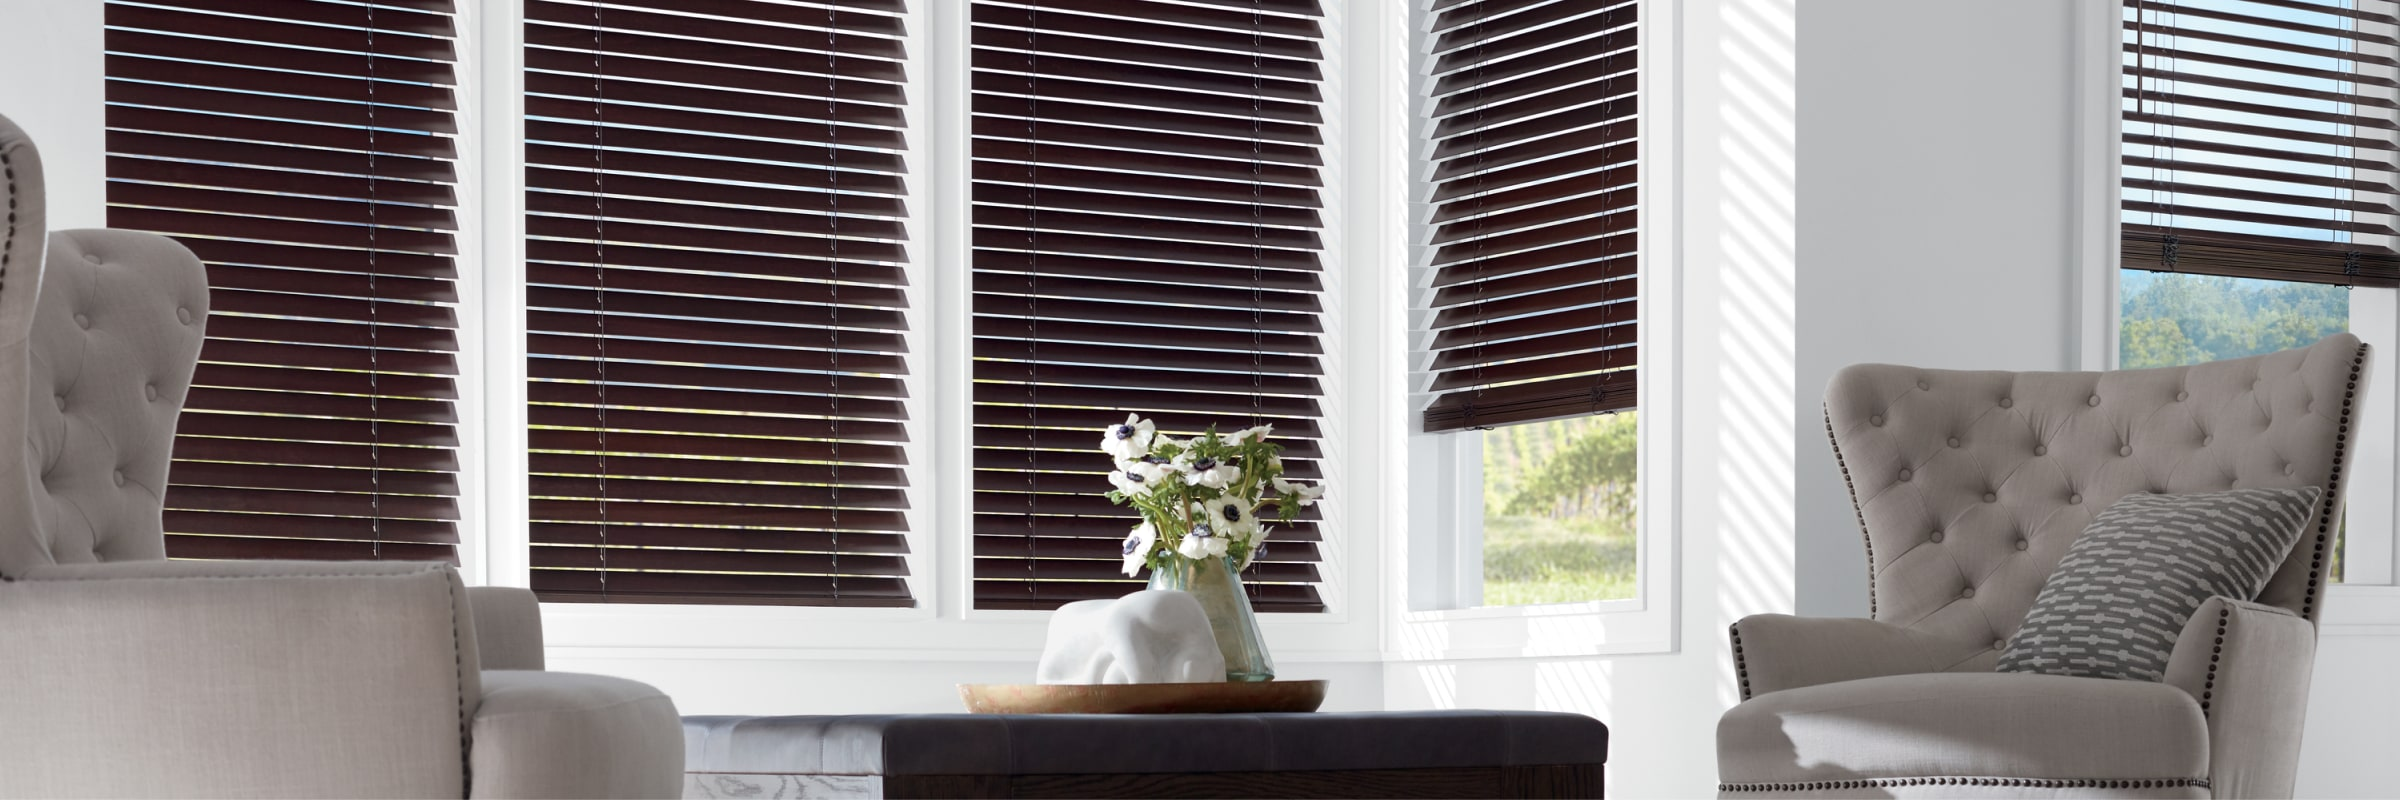 Wooden blinds in Classics Espresso - Parkland